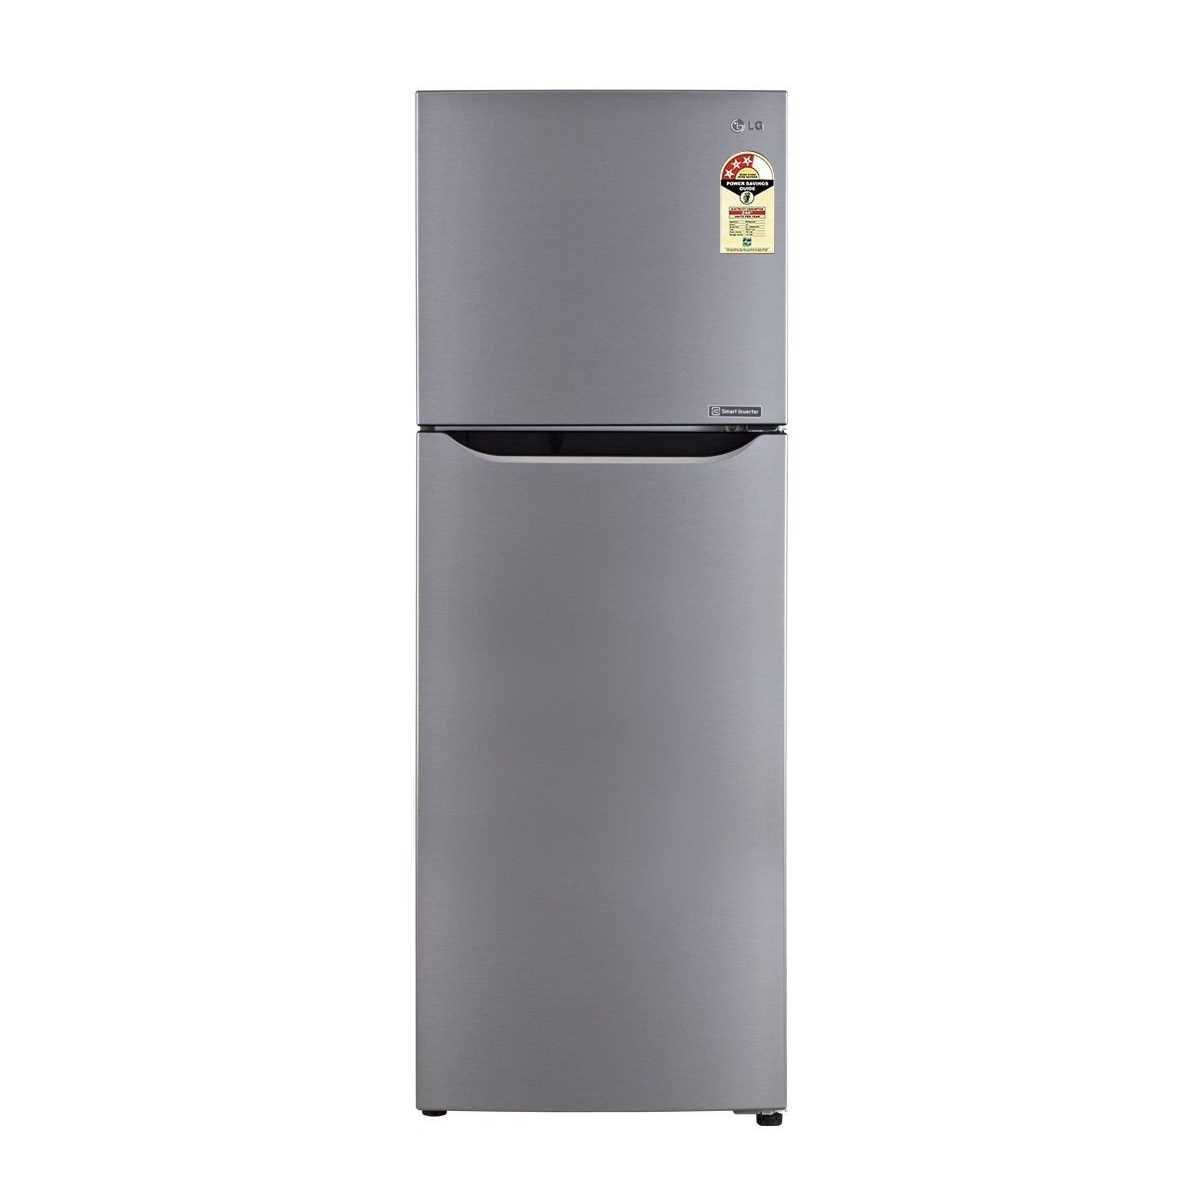 LG GL B282SGSM Double Door 255 Litres Frost Free Refrigerator Price {14 Jan  2018} | GL B282SGSM Reviews and Specifications